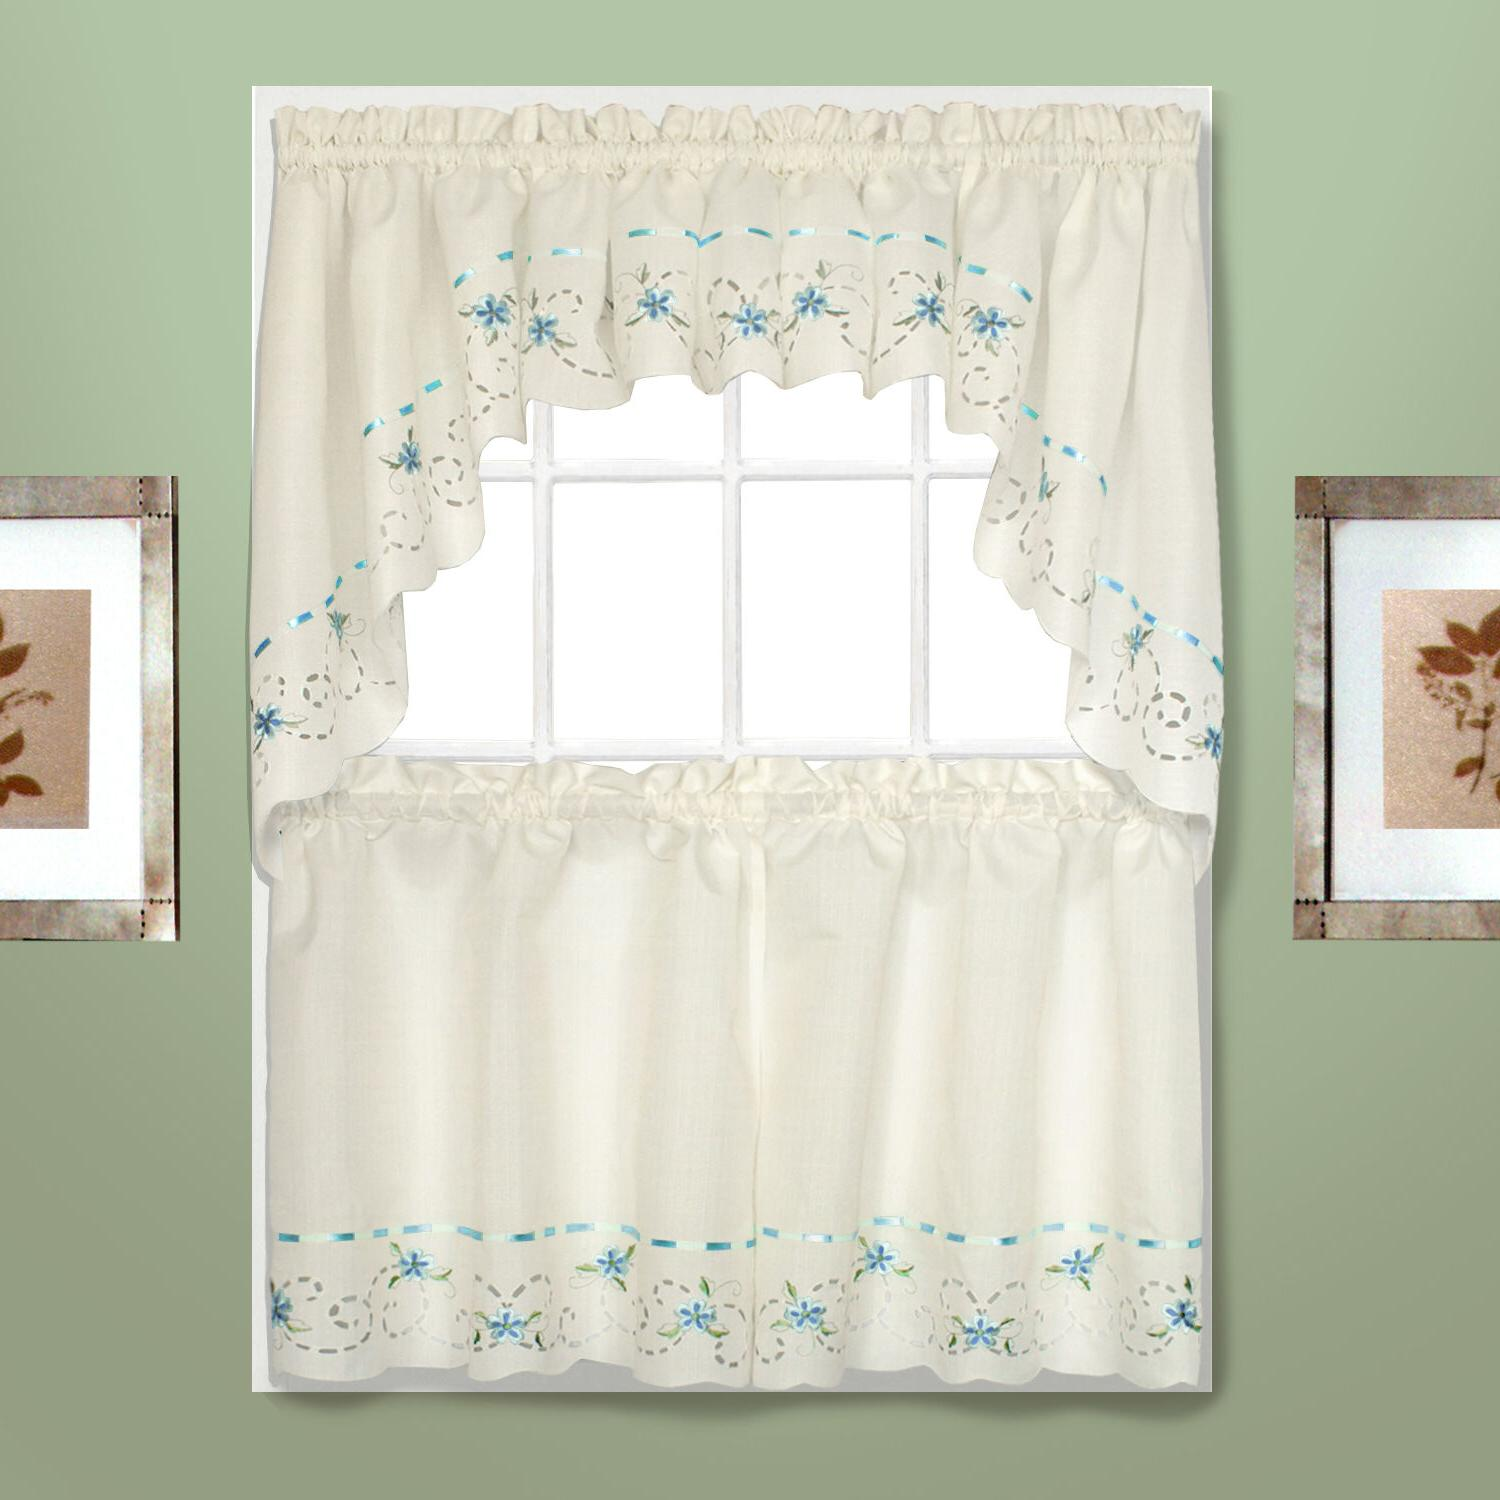 rachael embroidered kitchen curtain blue tiers swags